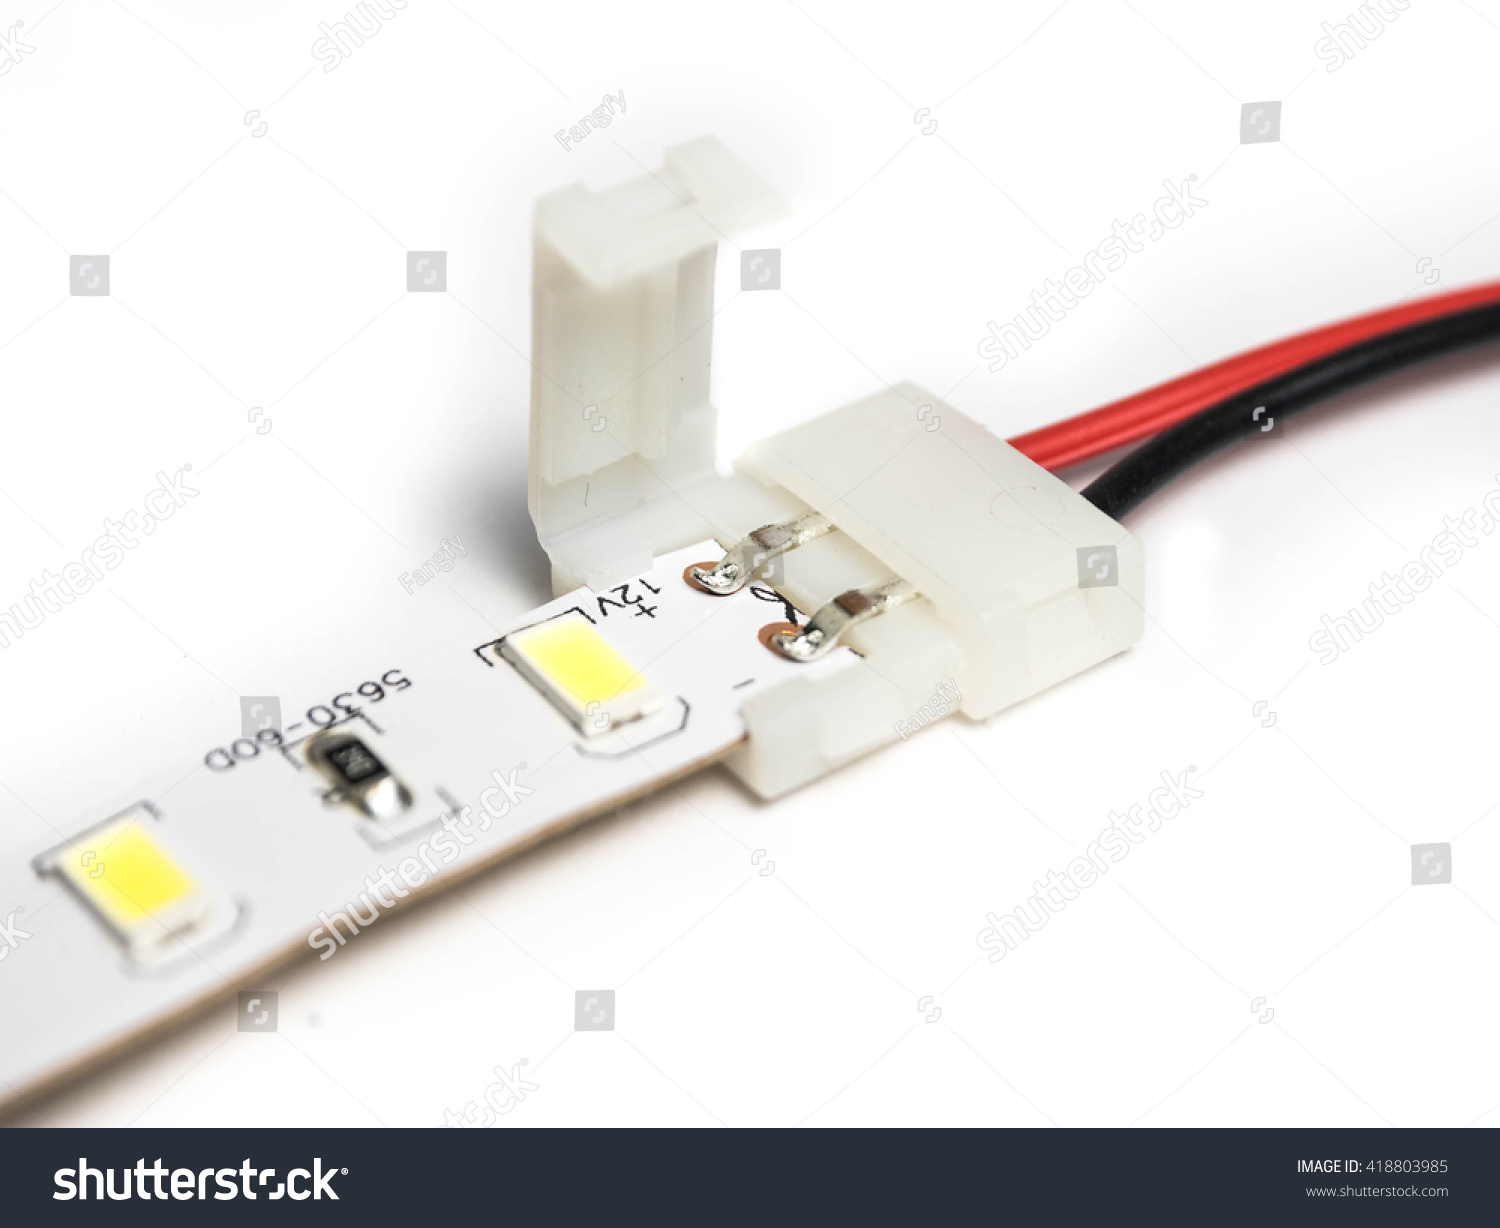 Led strip lights connectors on isolated stock photo 418803985 led strip lights connectors on isolated stock photo 418803985 shutterstock aloadofball Image collections